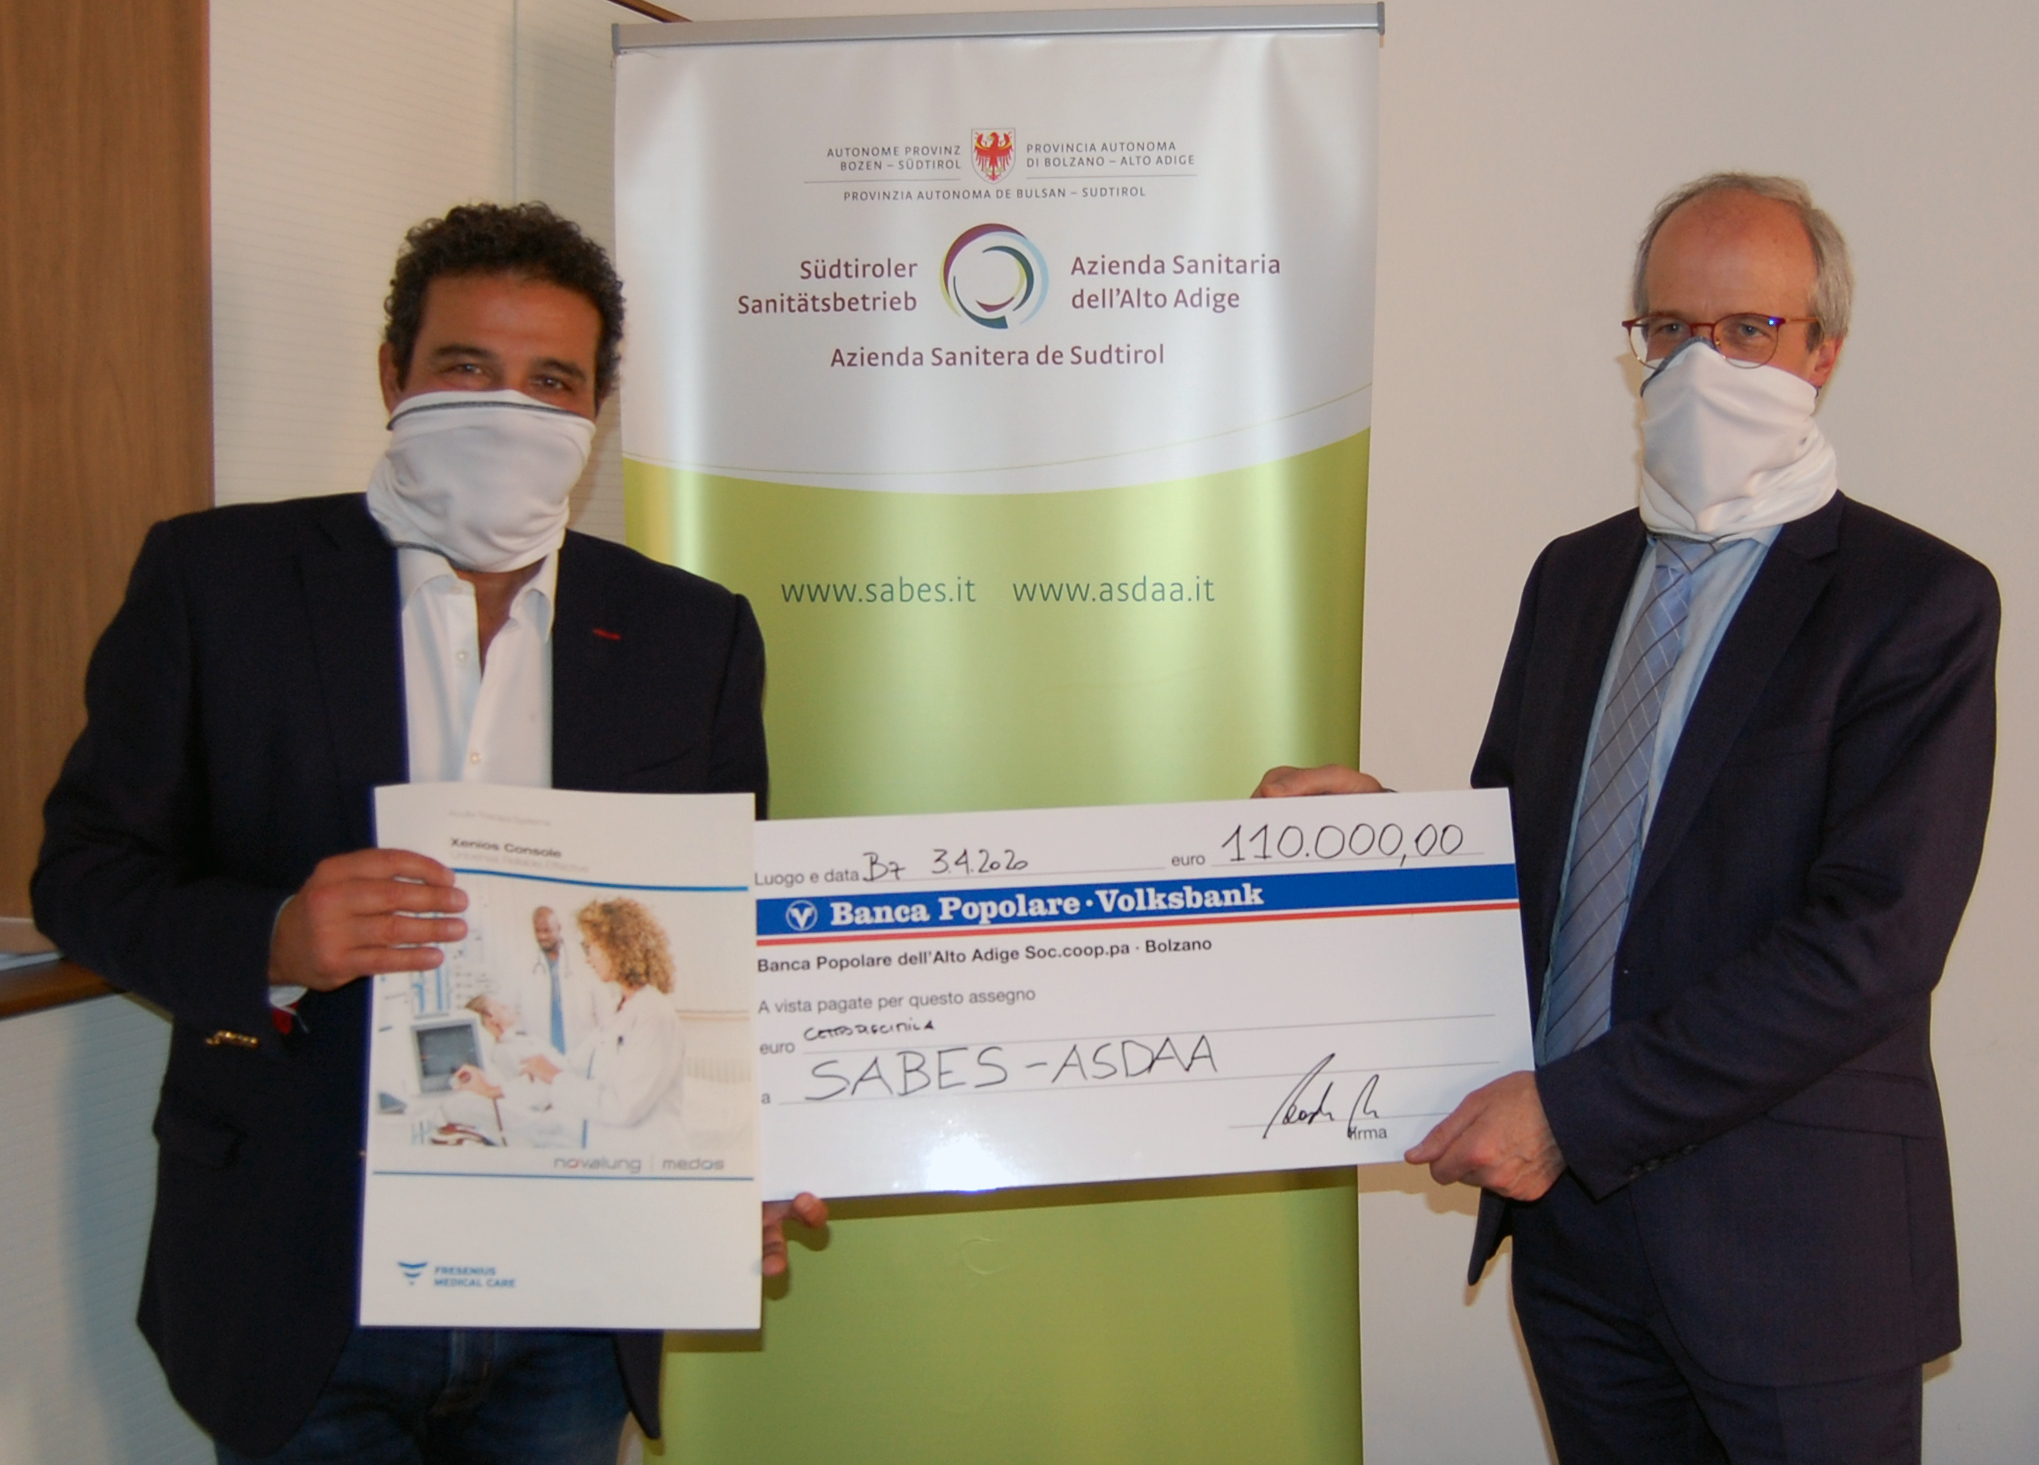 A LIFE-SAVING MACHINE IS AVAILABLE THANKS TO THE PODINI FOUNDATION